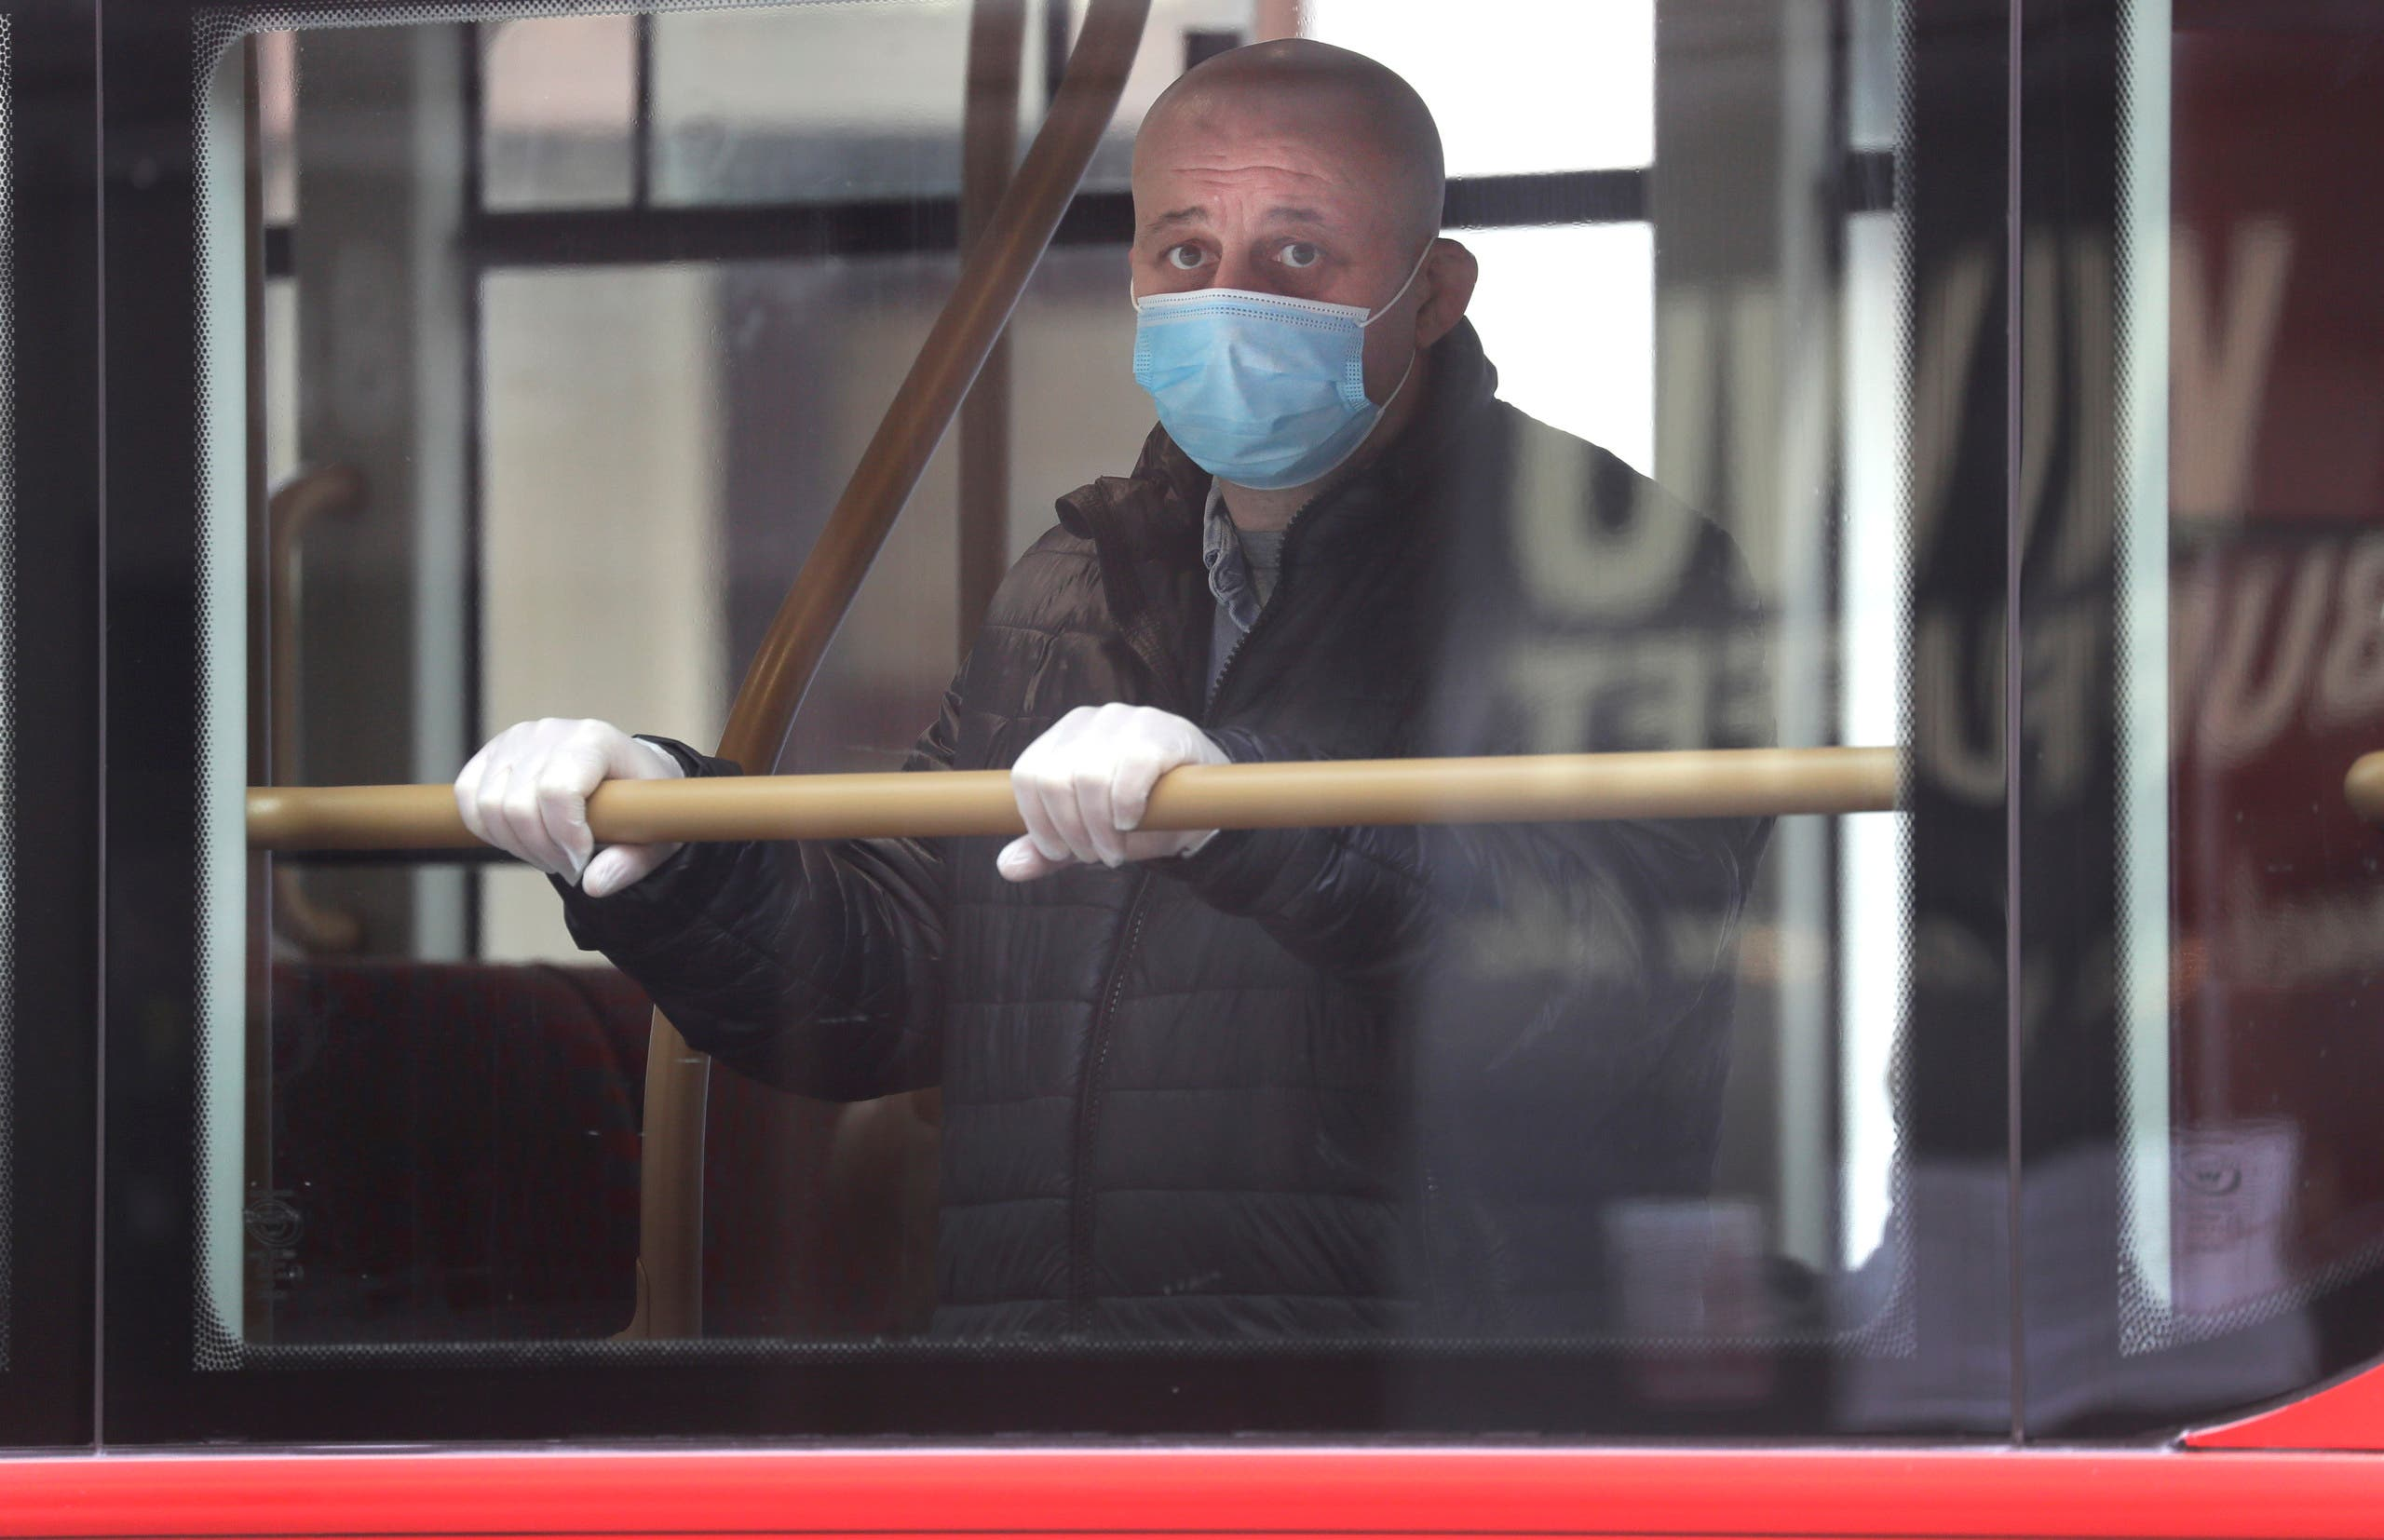 A man wears a mask to protect against the coronavirus as he looks out of the window of a bus in London on May 4, 2020. (AP)